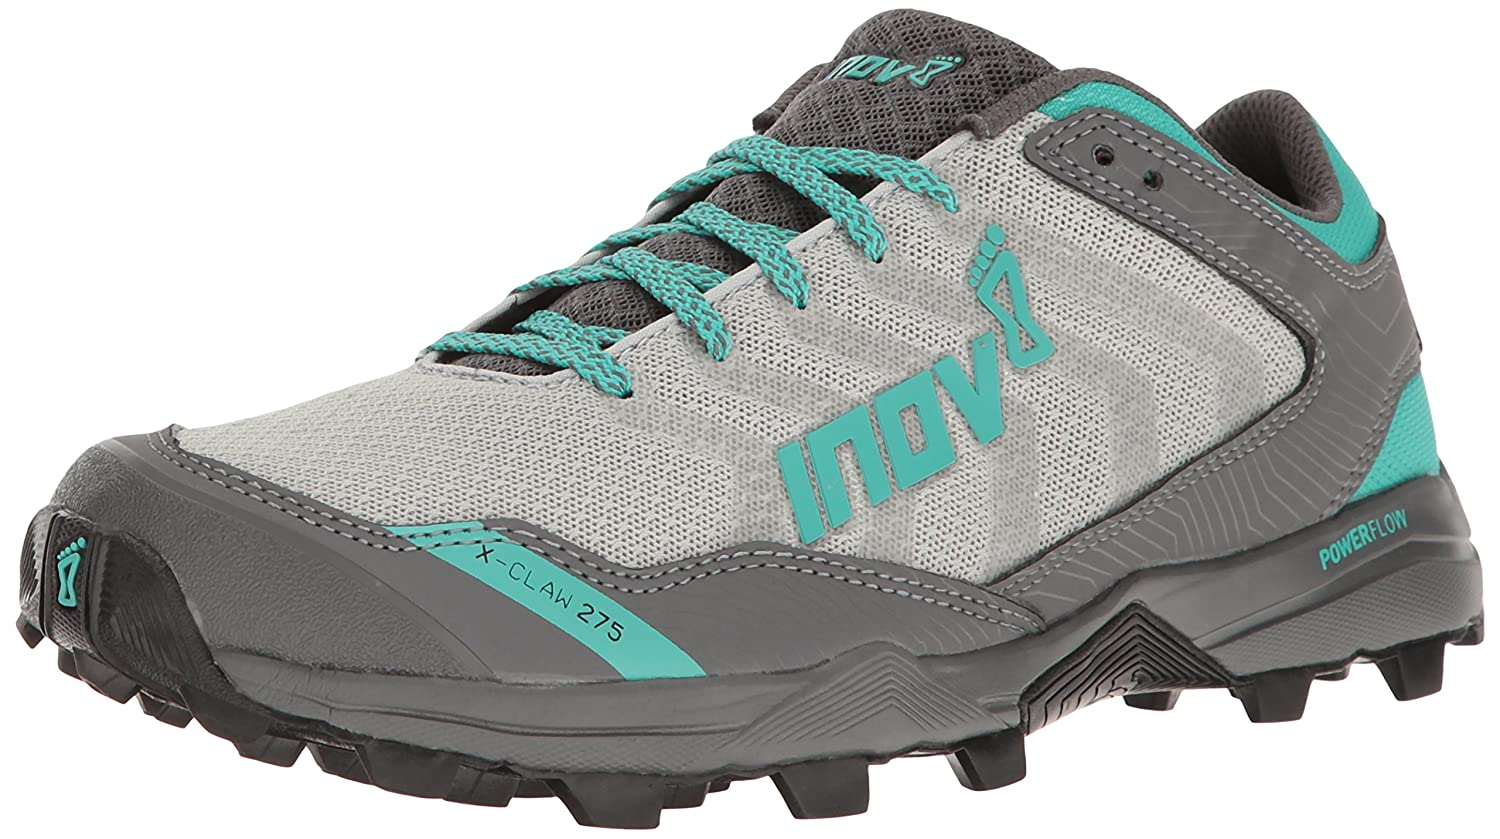 Inov-8 Women's X-Claw 275 Chill Trail Runner B01G50NYCY 7 E US|Silver/Teal/Grey